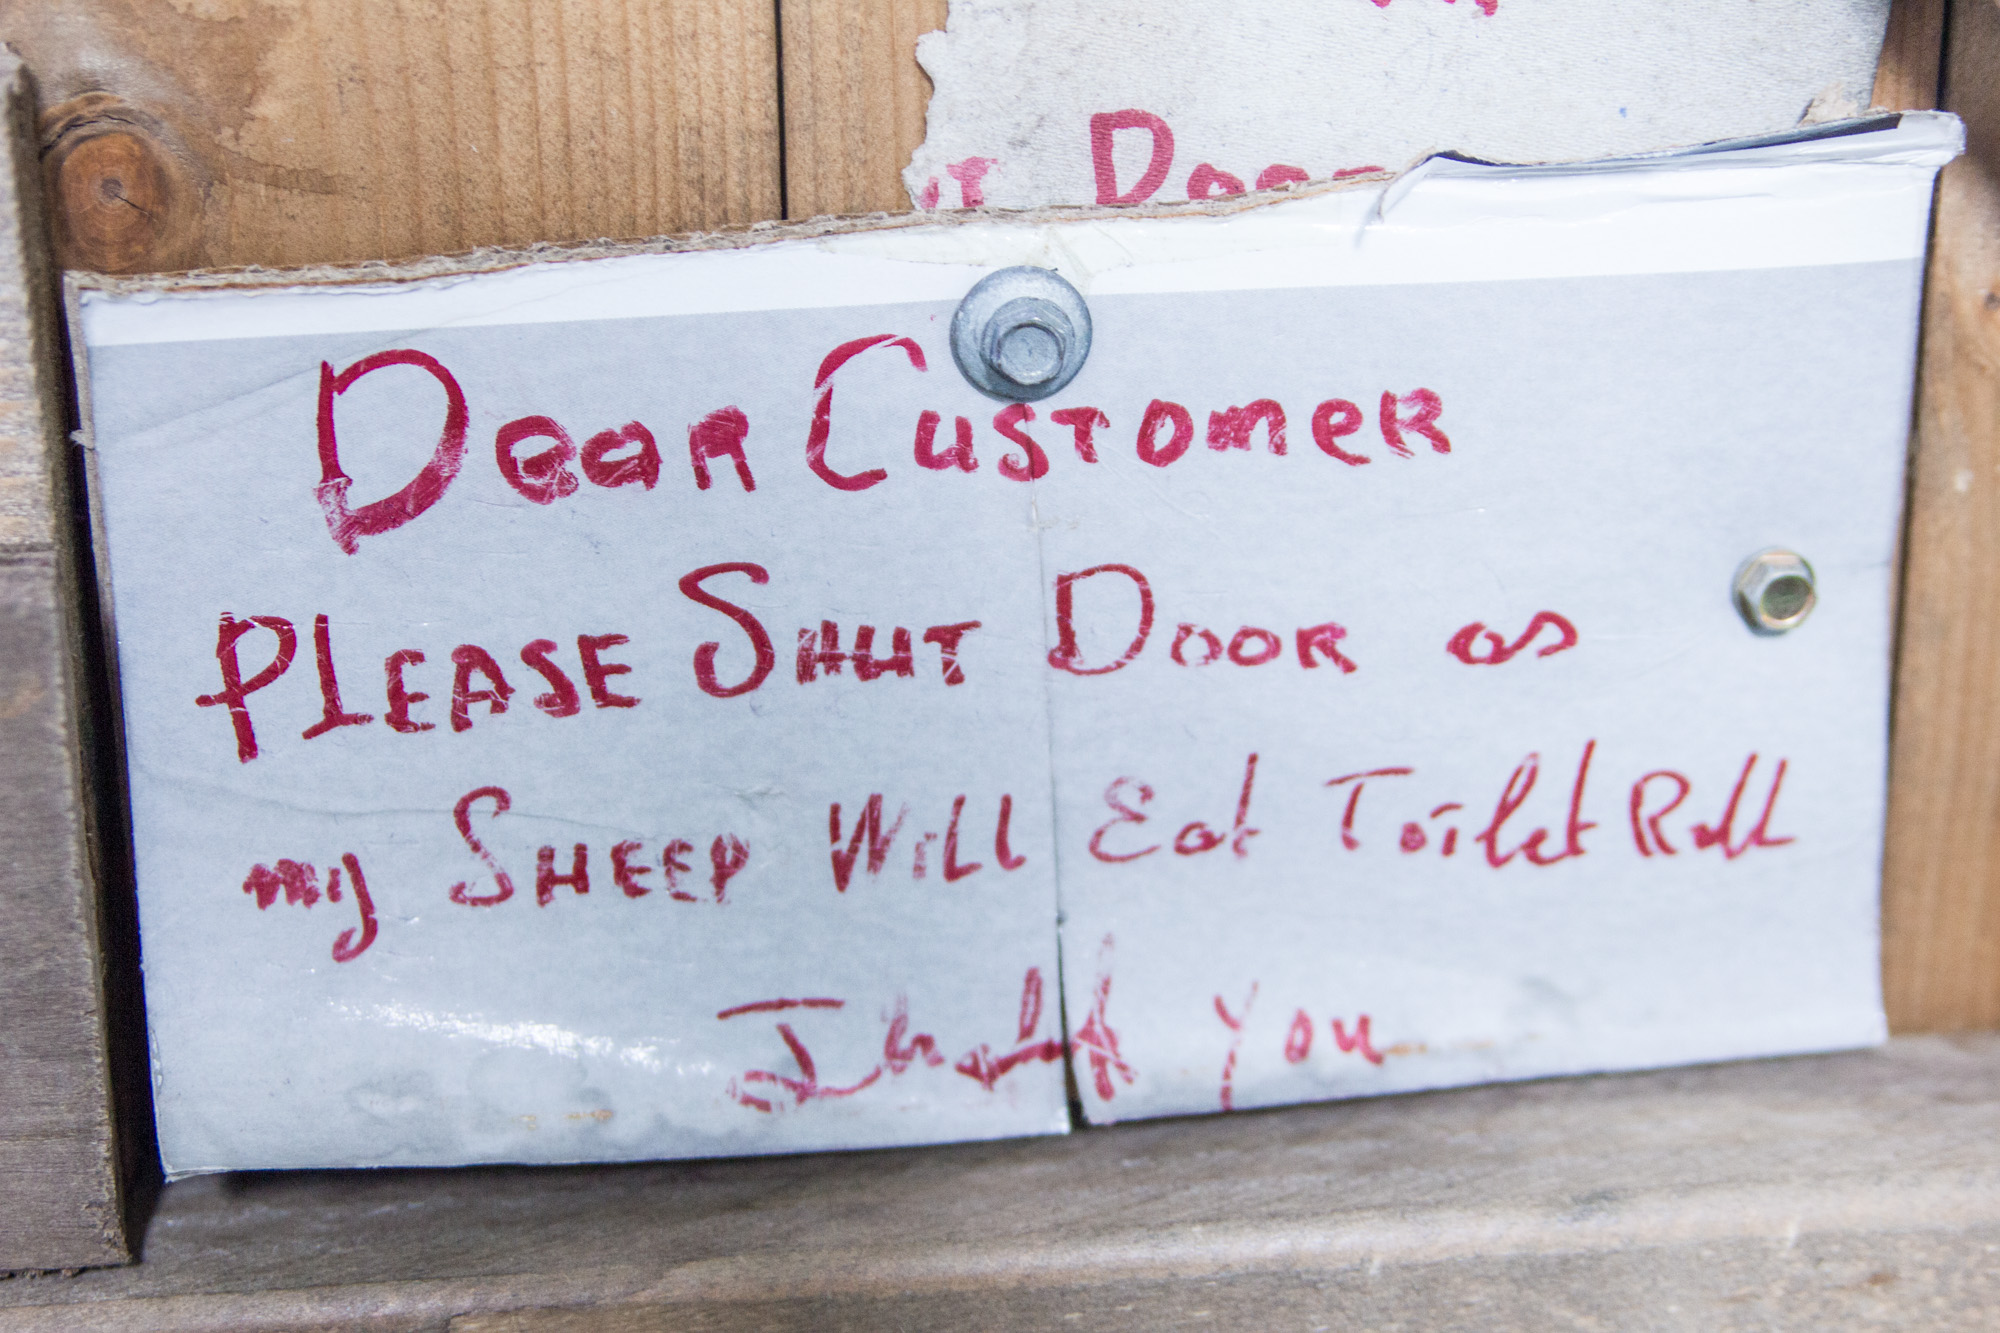 """Sign in Ireland says: """"Dear customer, please shut the door or the sheep will eat the toilet paper. Thank you."""""""